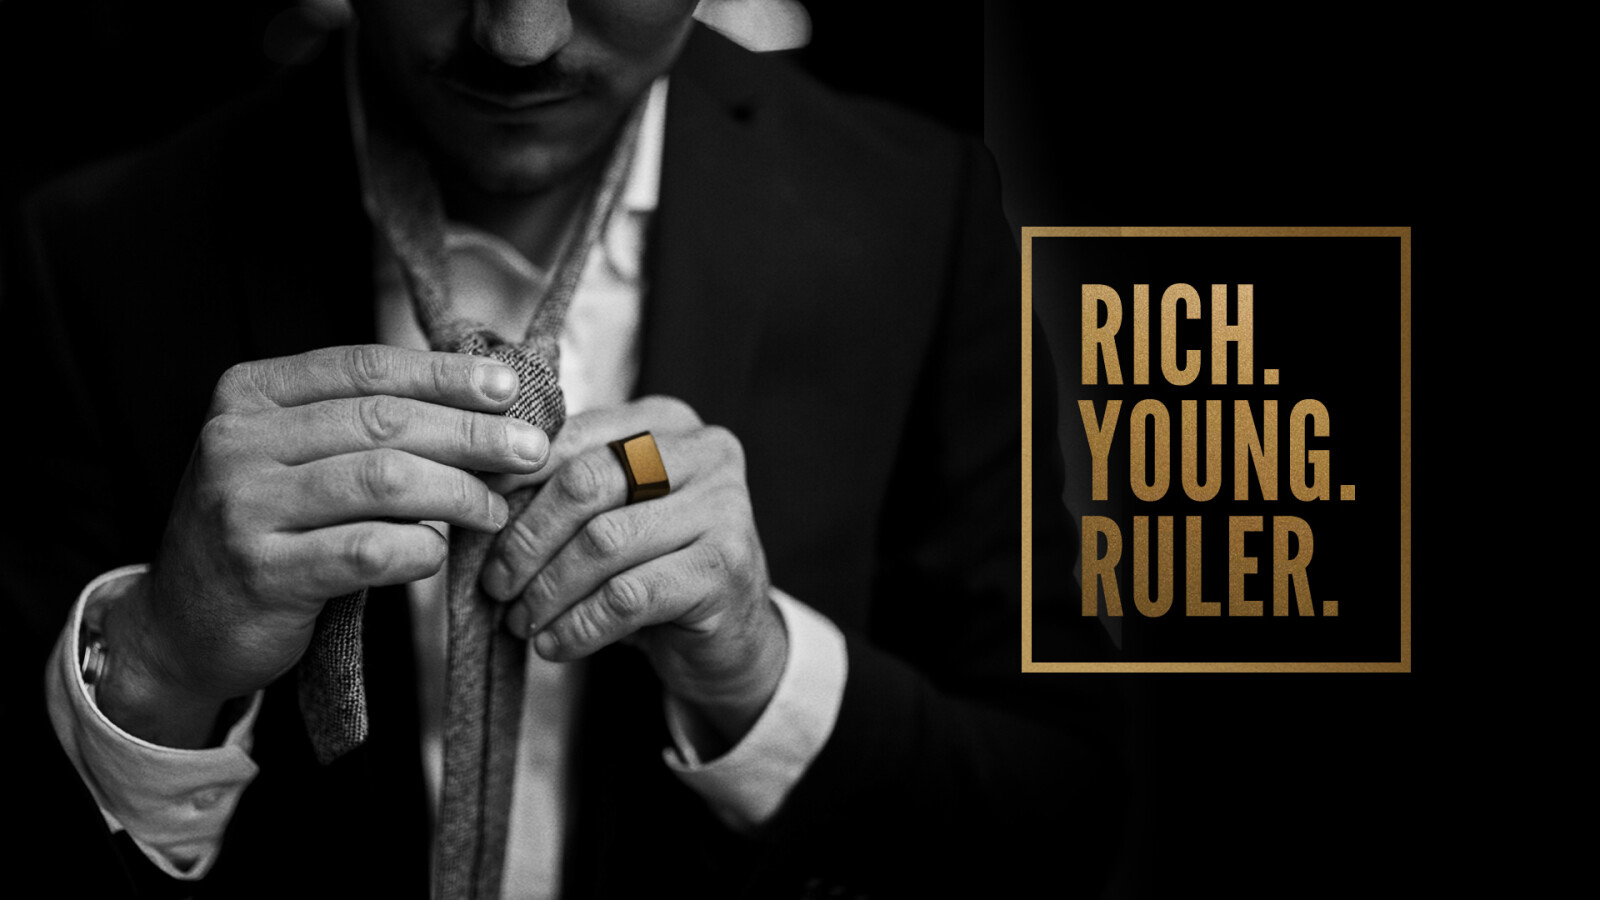 Rich.Young.Ruler.